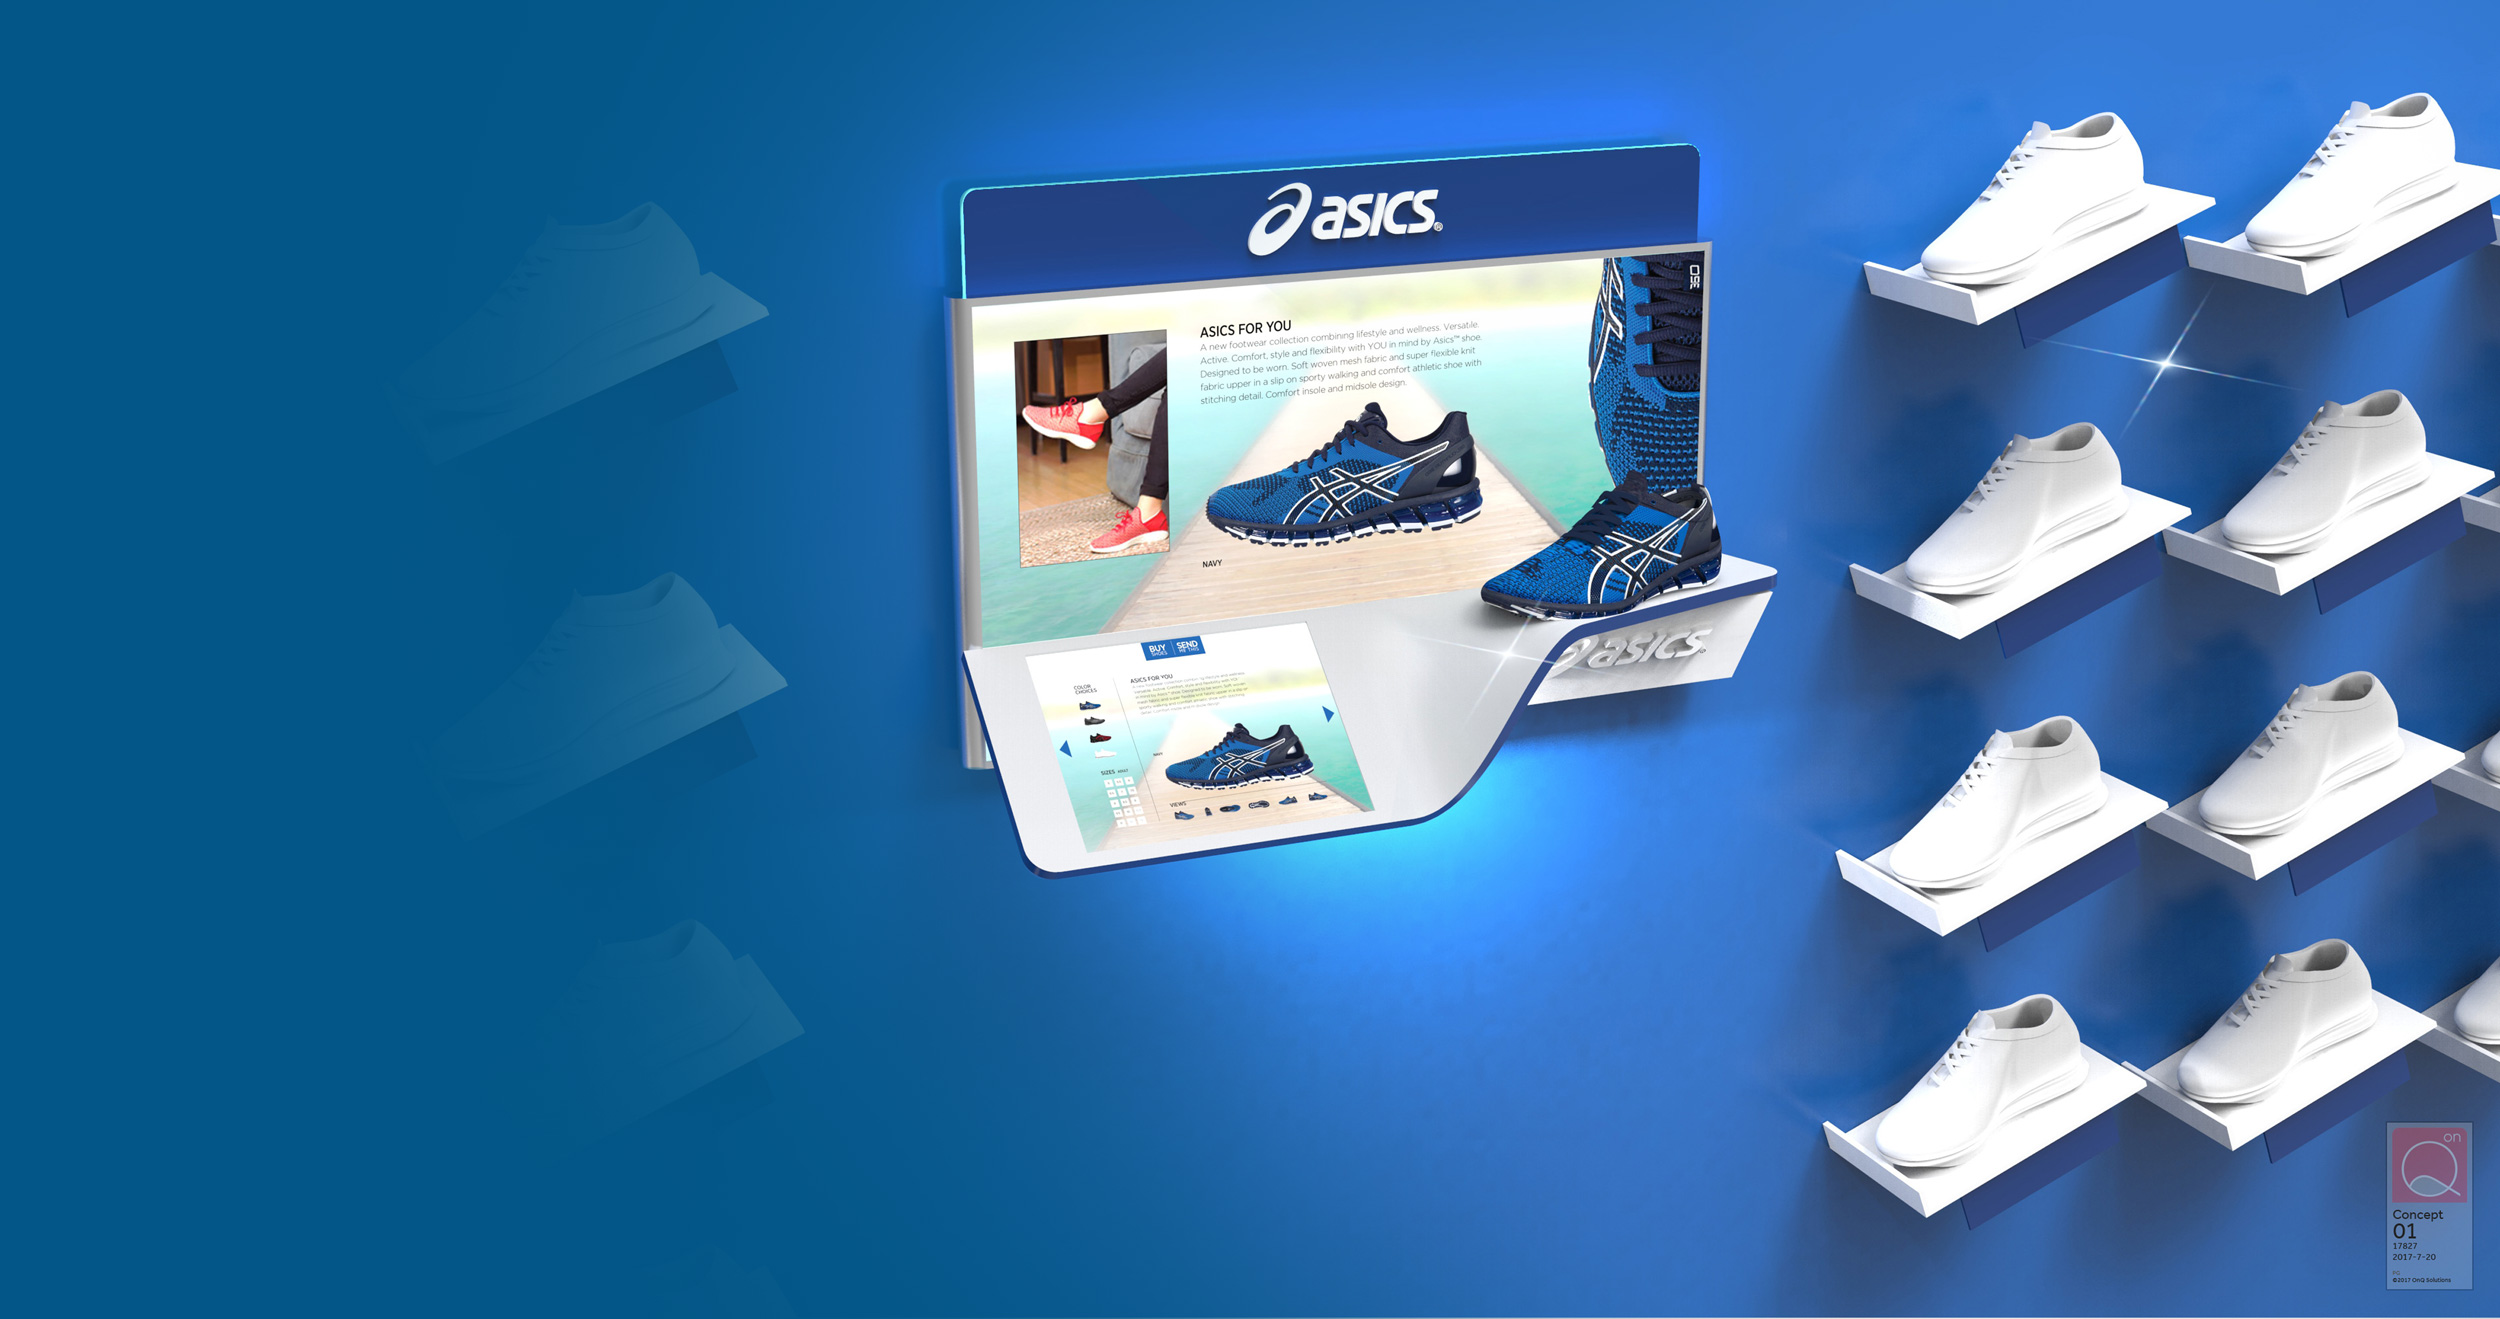 ASICS CONCEPT DISPLAY -